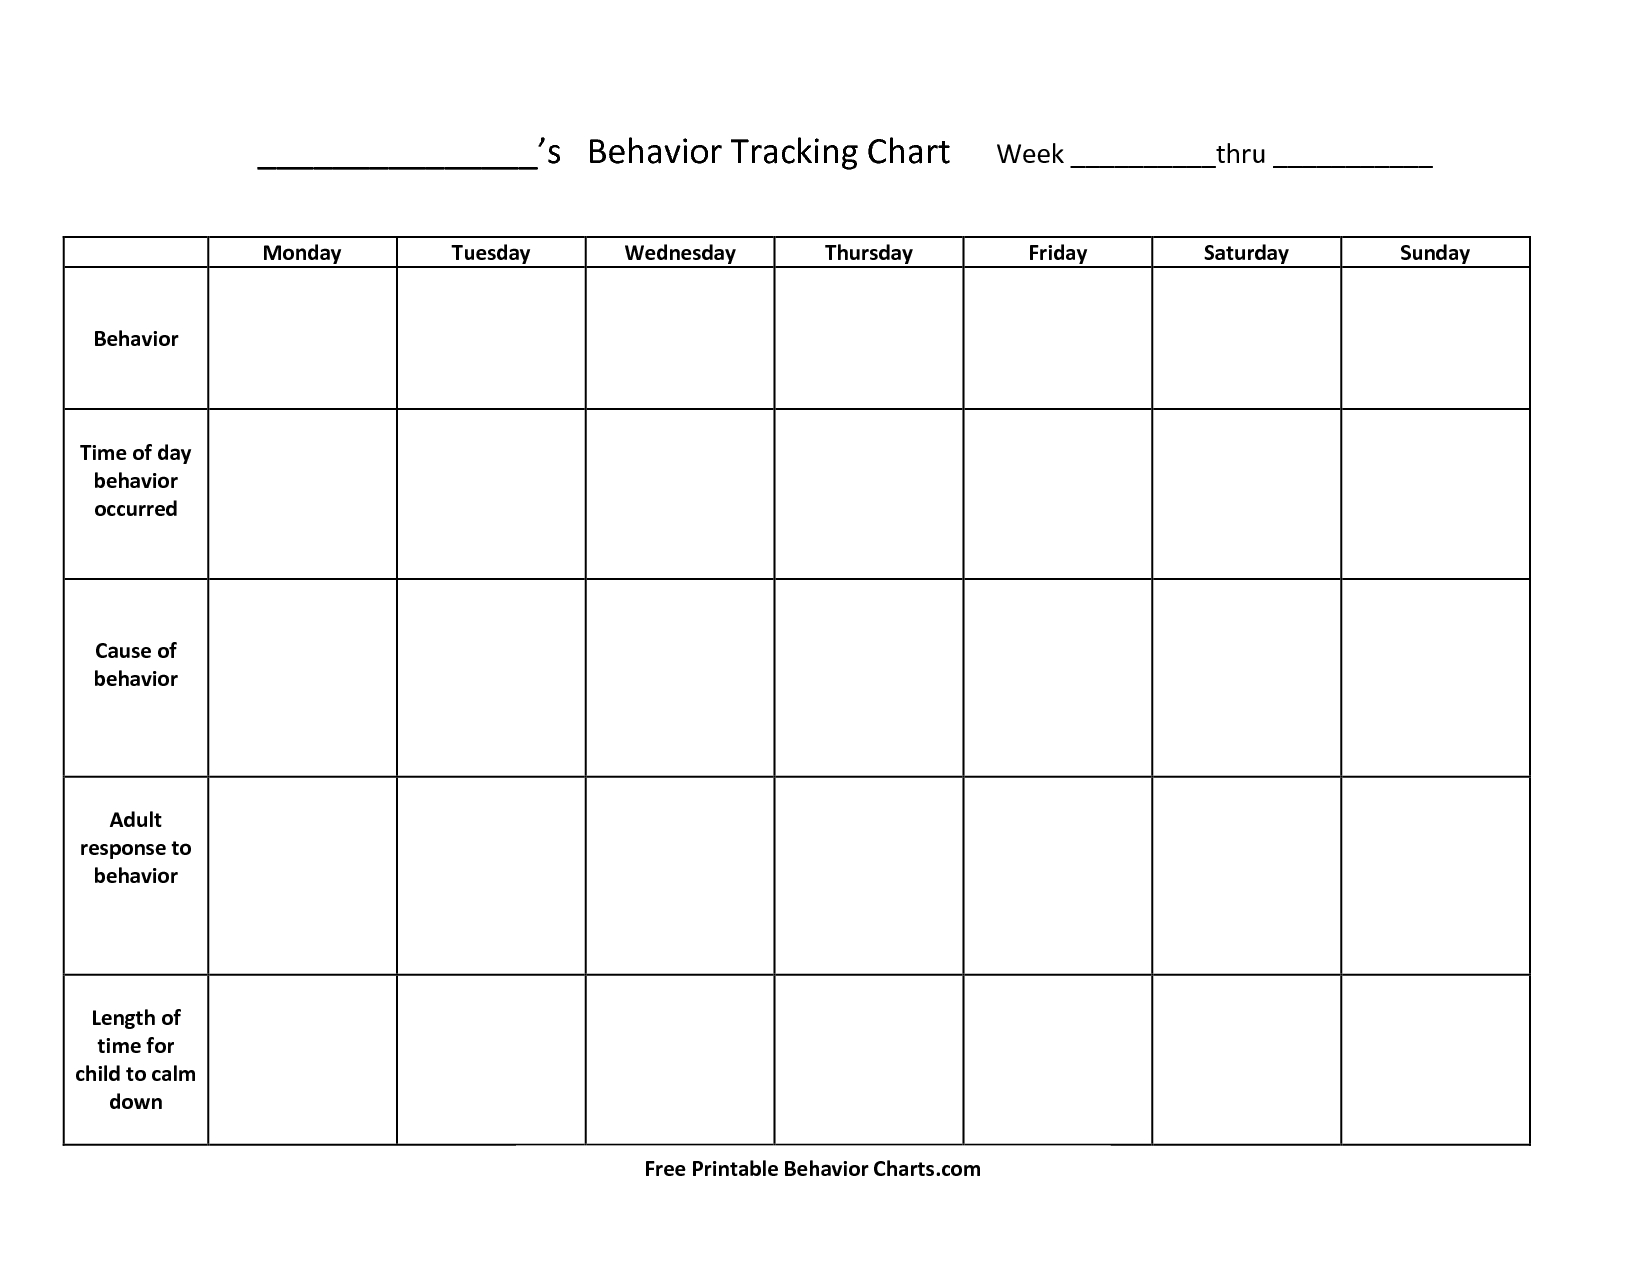 Free Printable Behavior Charts For Teachers | Free Printable